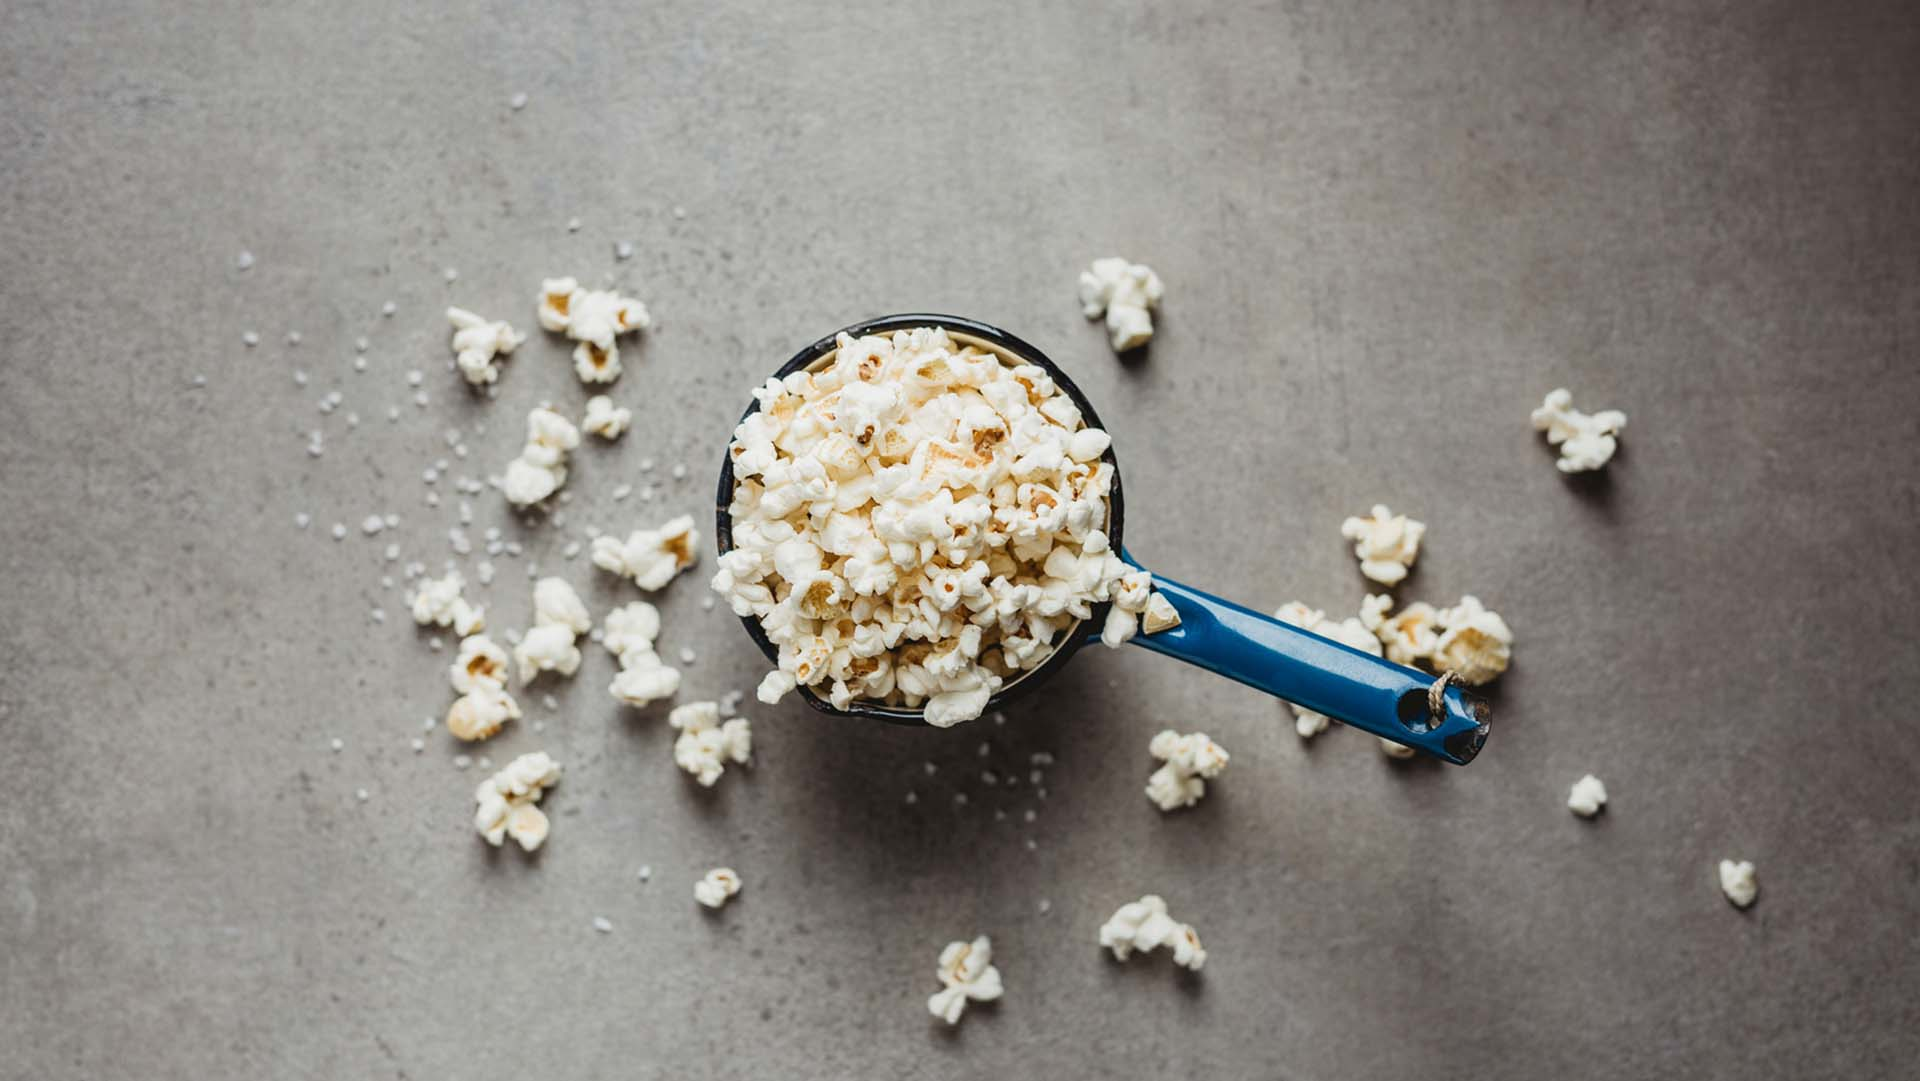 be_10_healthy_lunchbox_snacks_popcorn